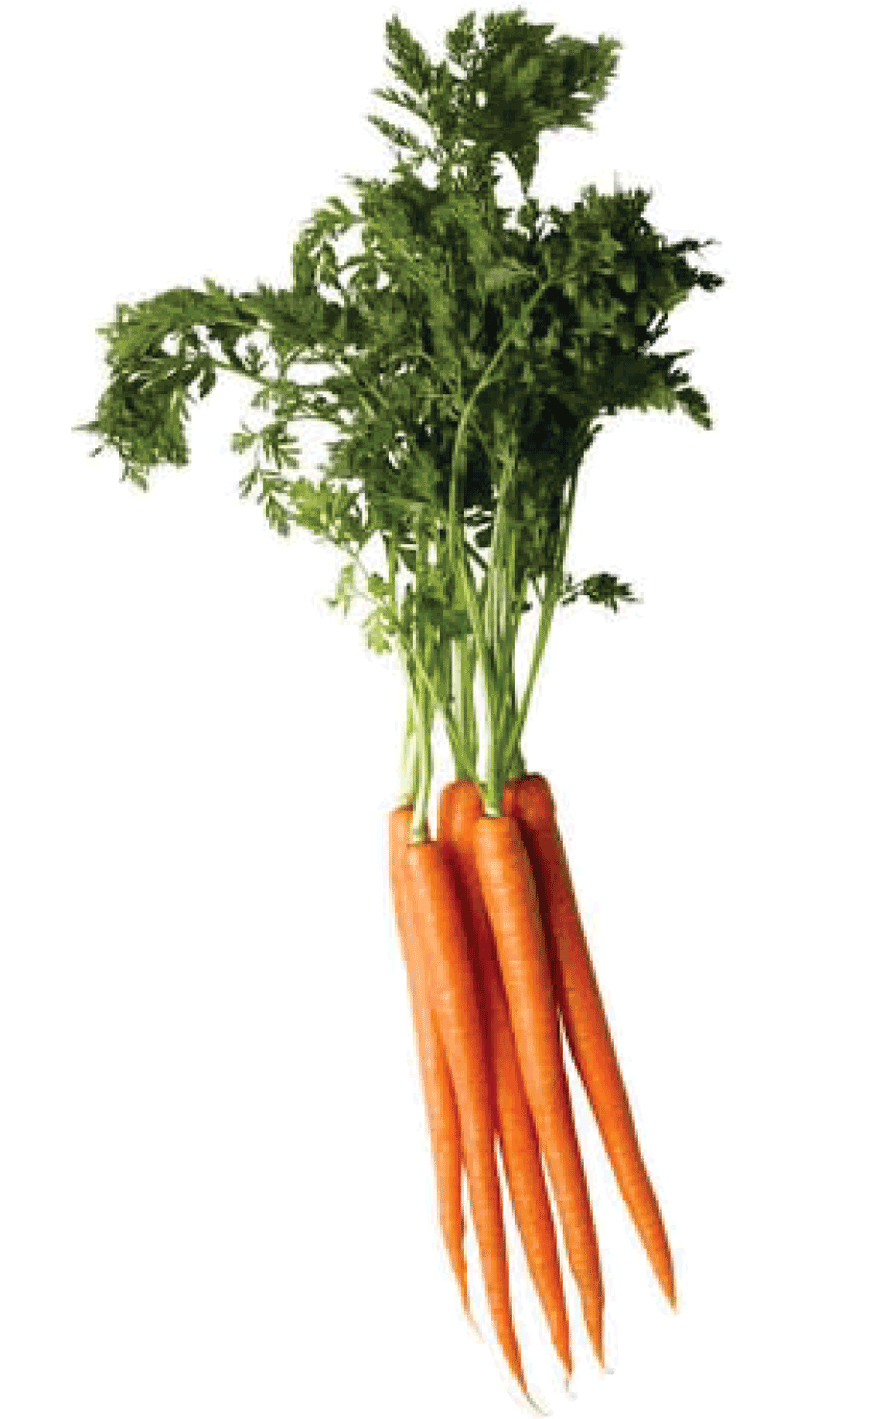 Carrot Png Image PNG Image